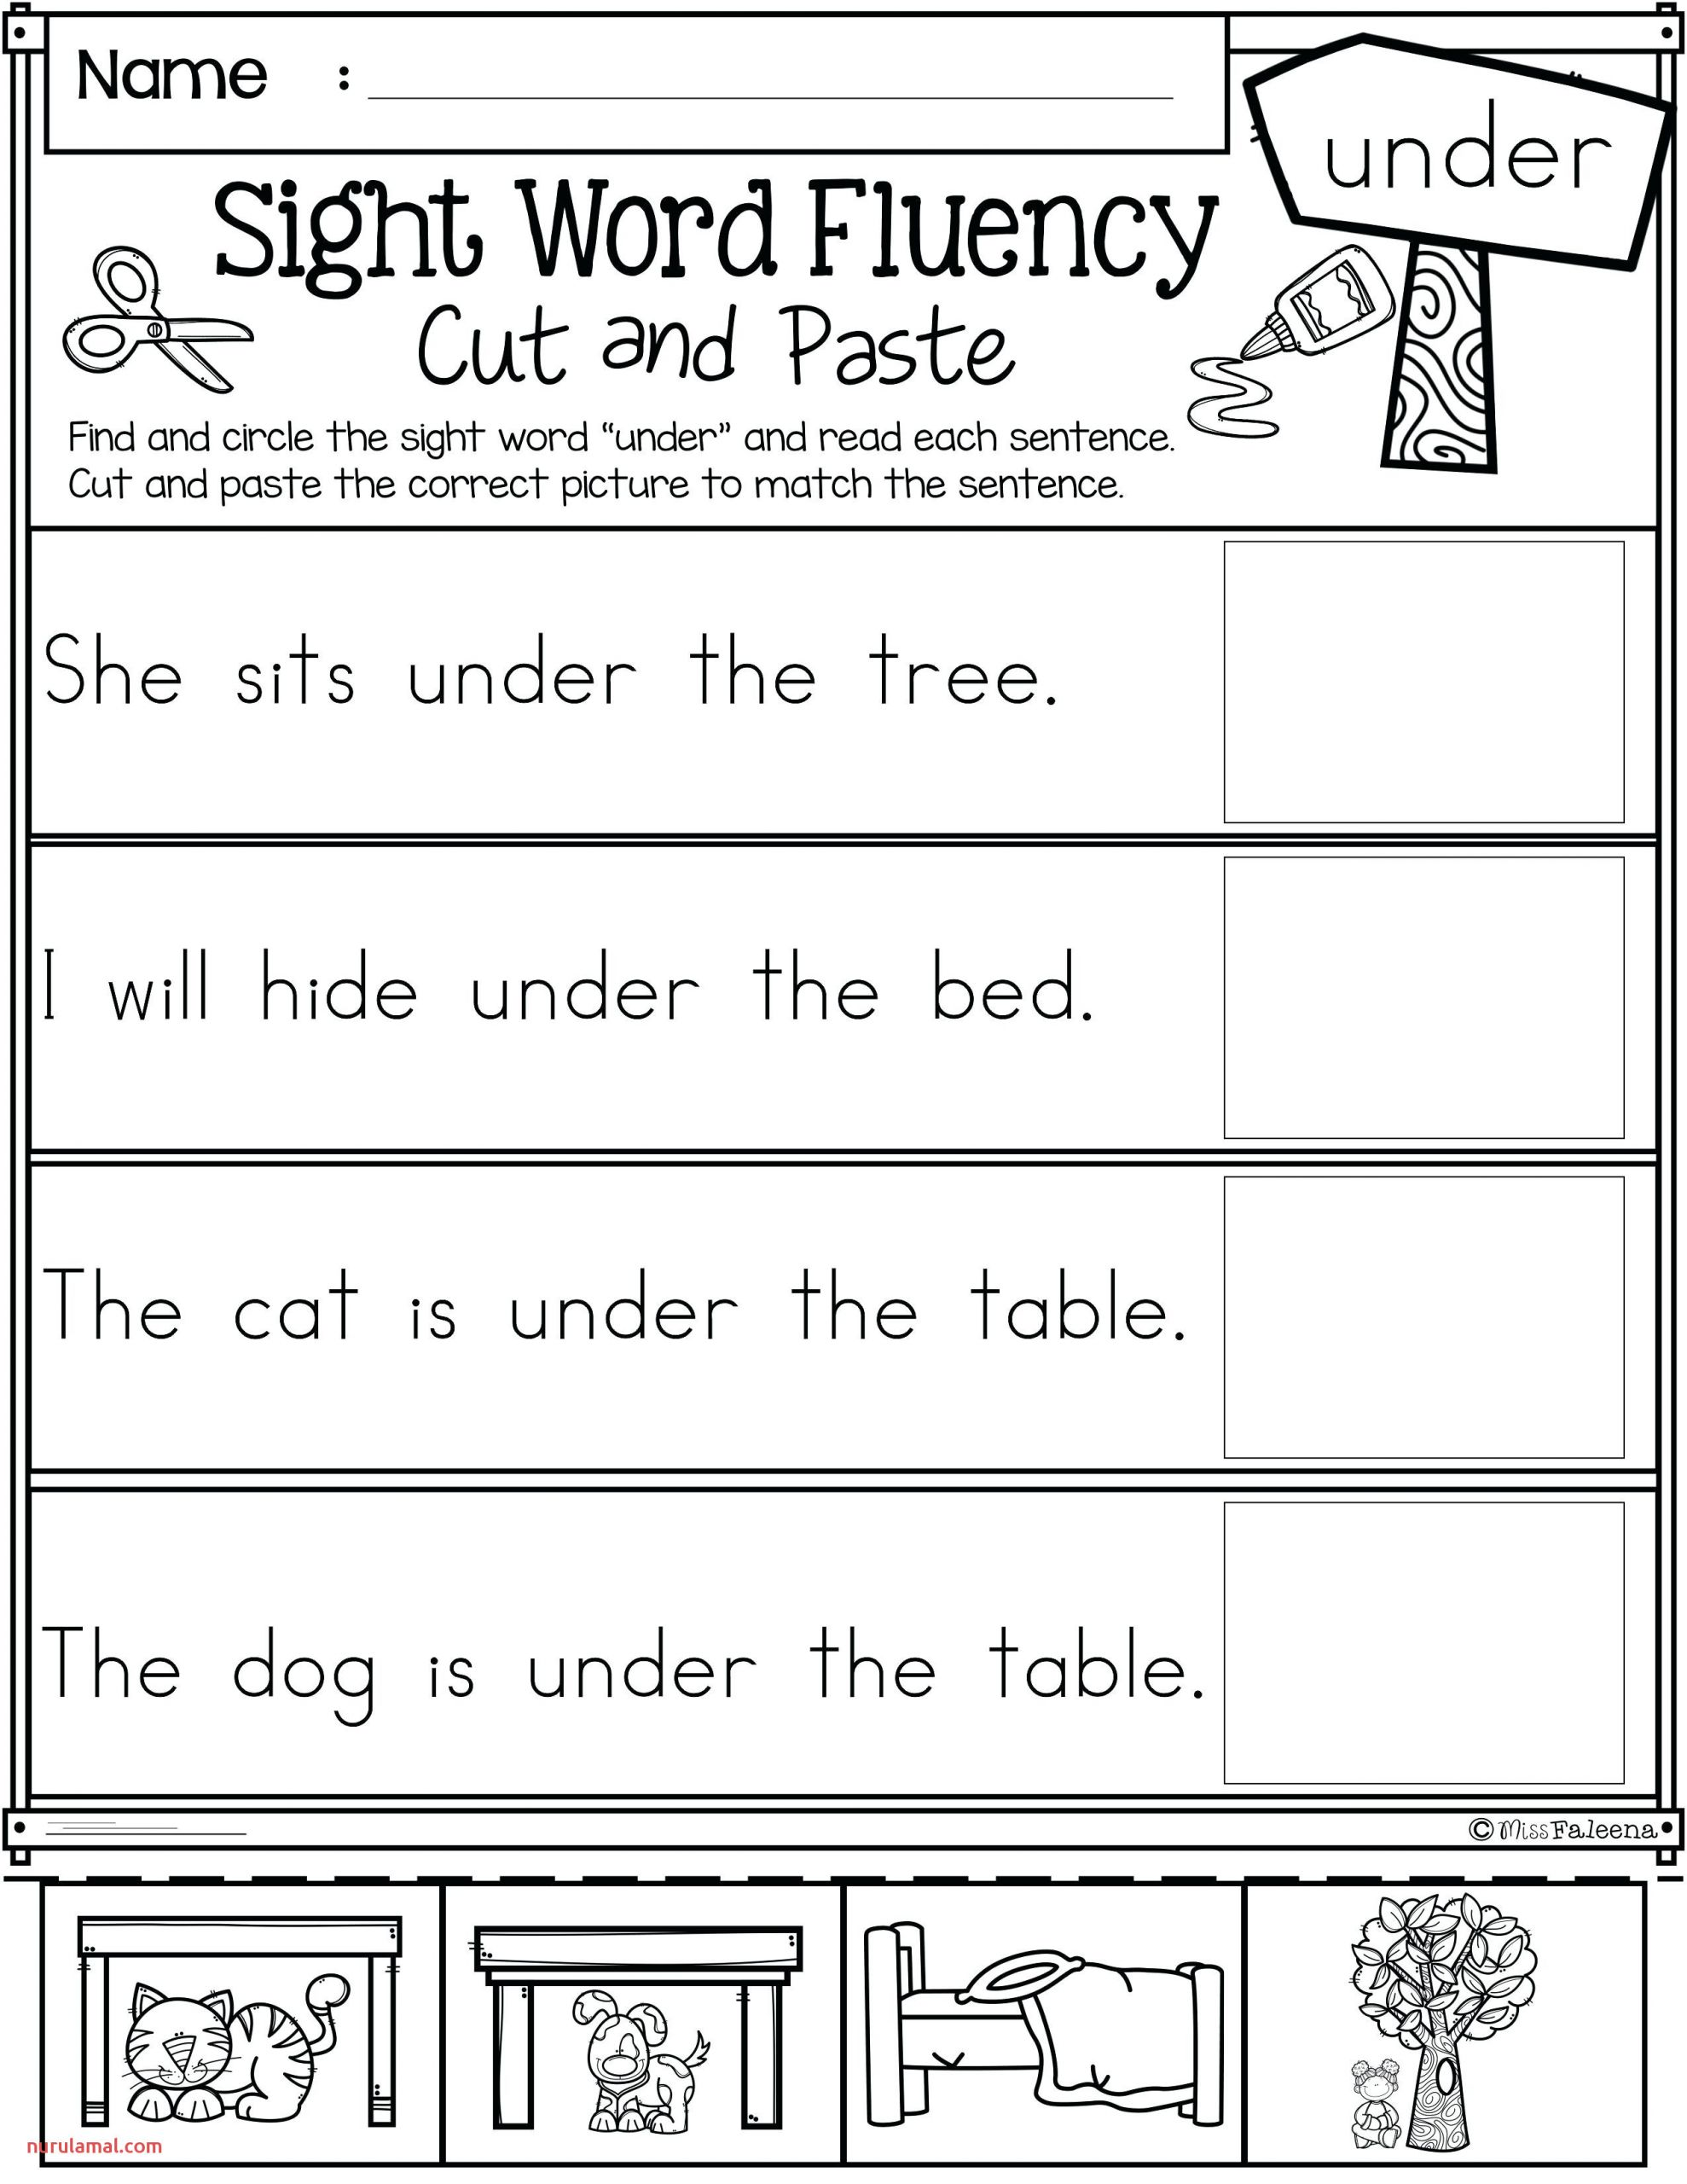 I Need 2nd Grade Math Worksheets Right Now